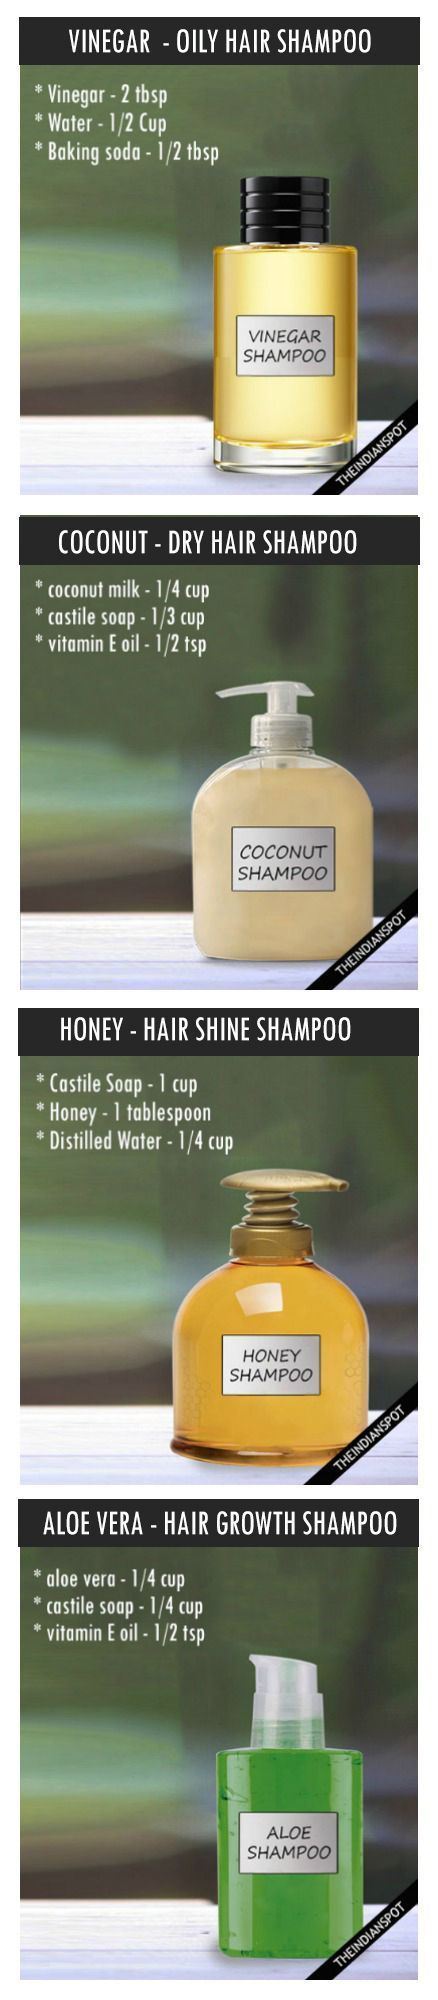 DIY ALL NATURAL SHAMPOO RECIPE FOR EVERY HAIR TYPE